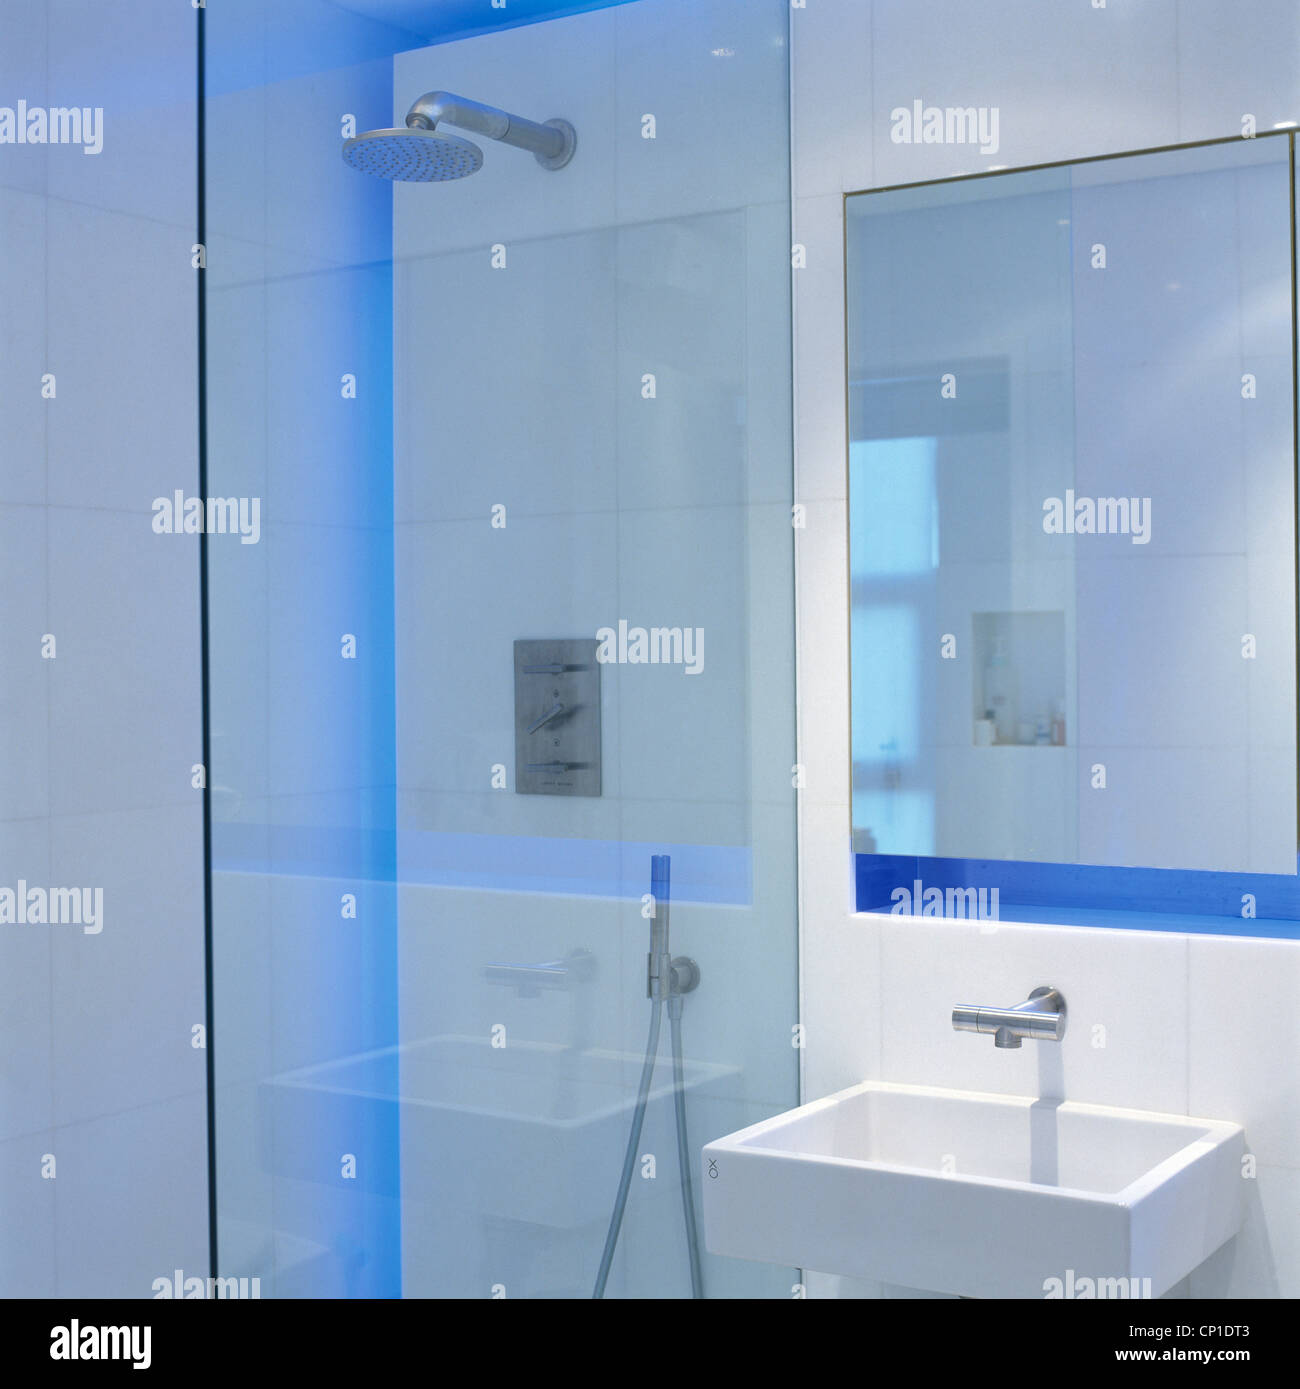 Shower Screen Stock Photos & Shower Screen Stock Images - Alamy